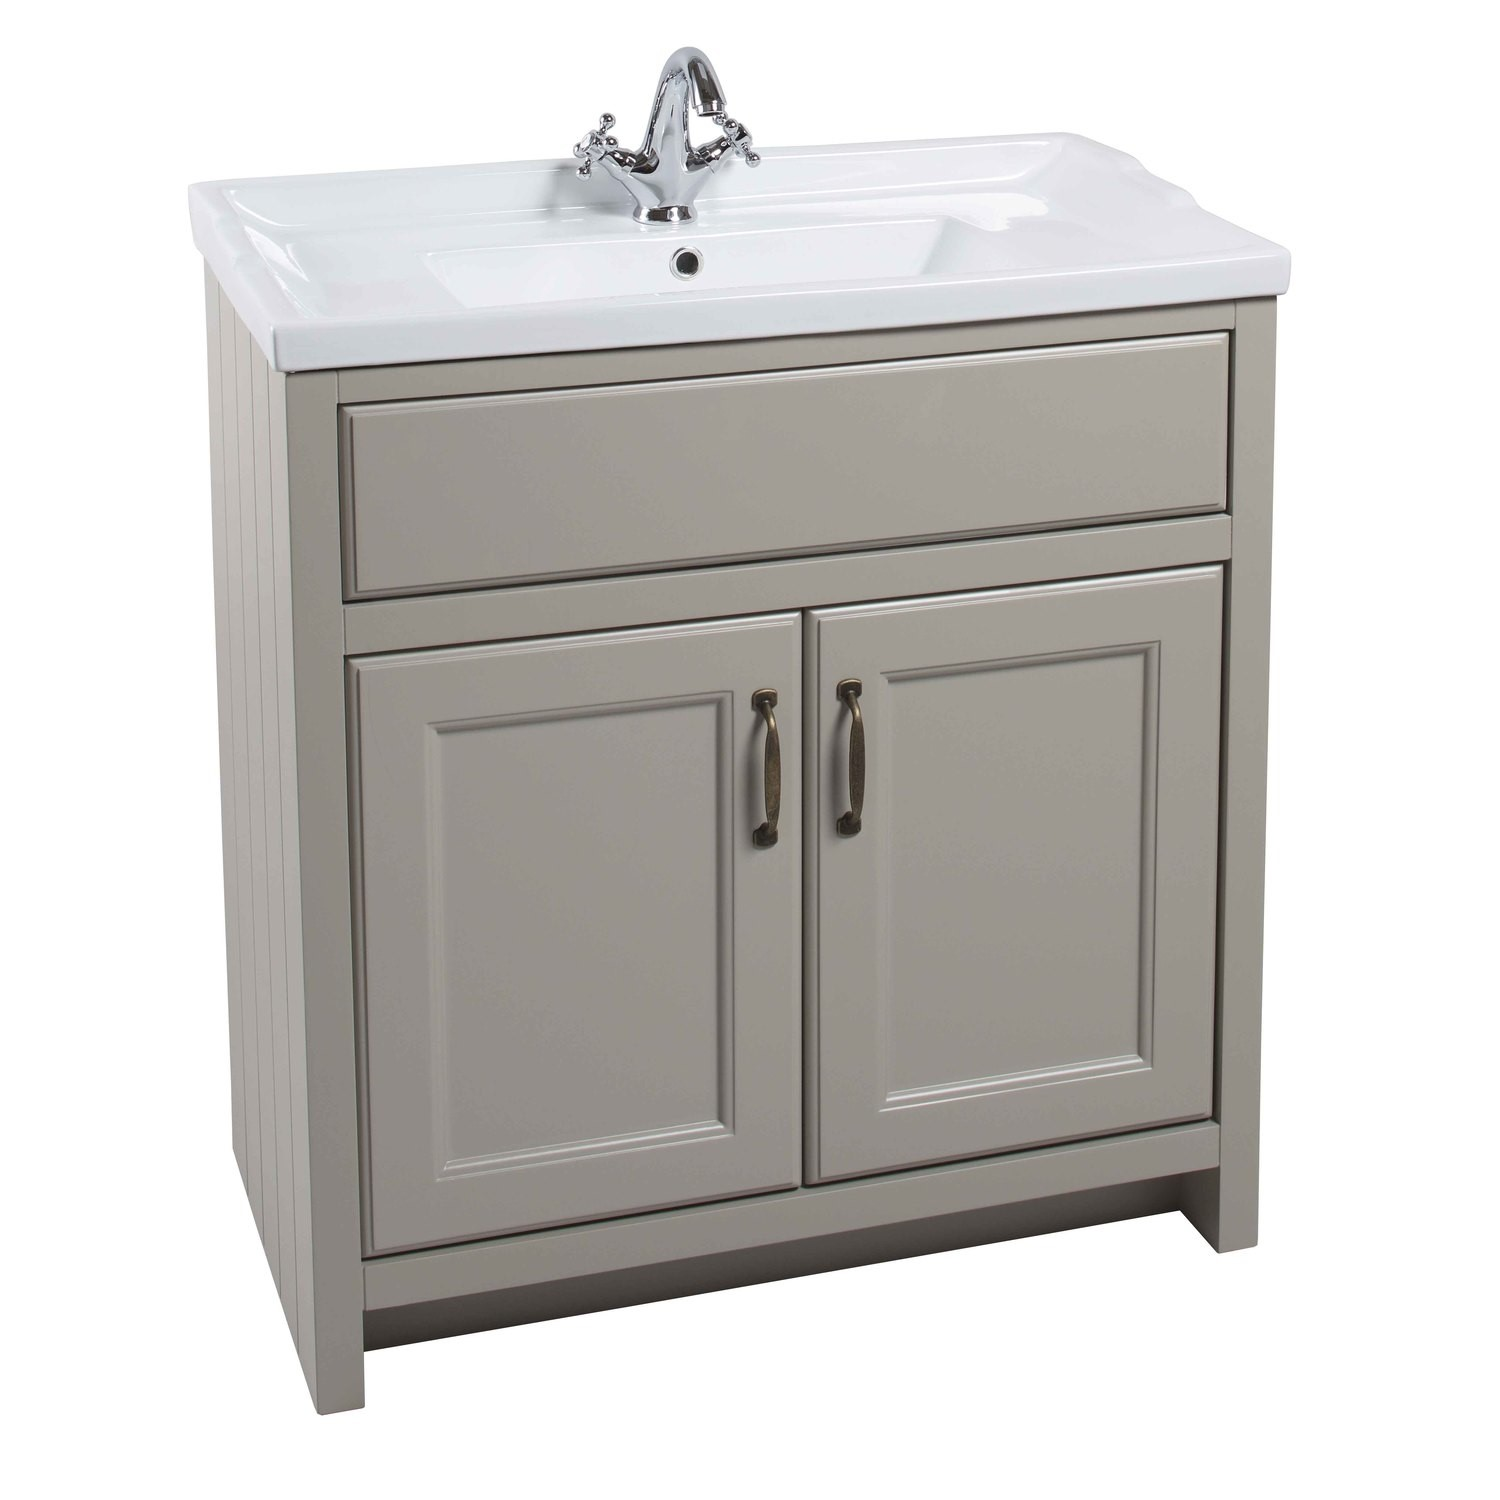 best service 12719 f44ad Grey Traditional Bathroom Free Standing Vanity Unit & Basin - W815mm